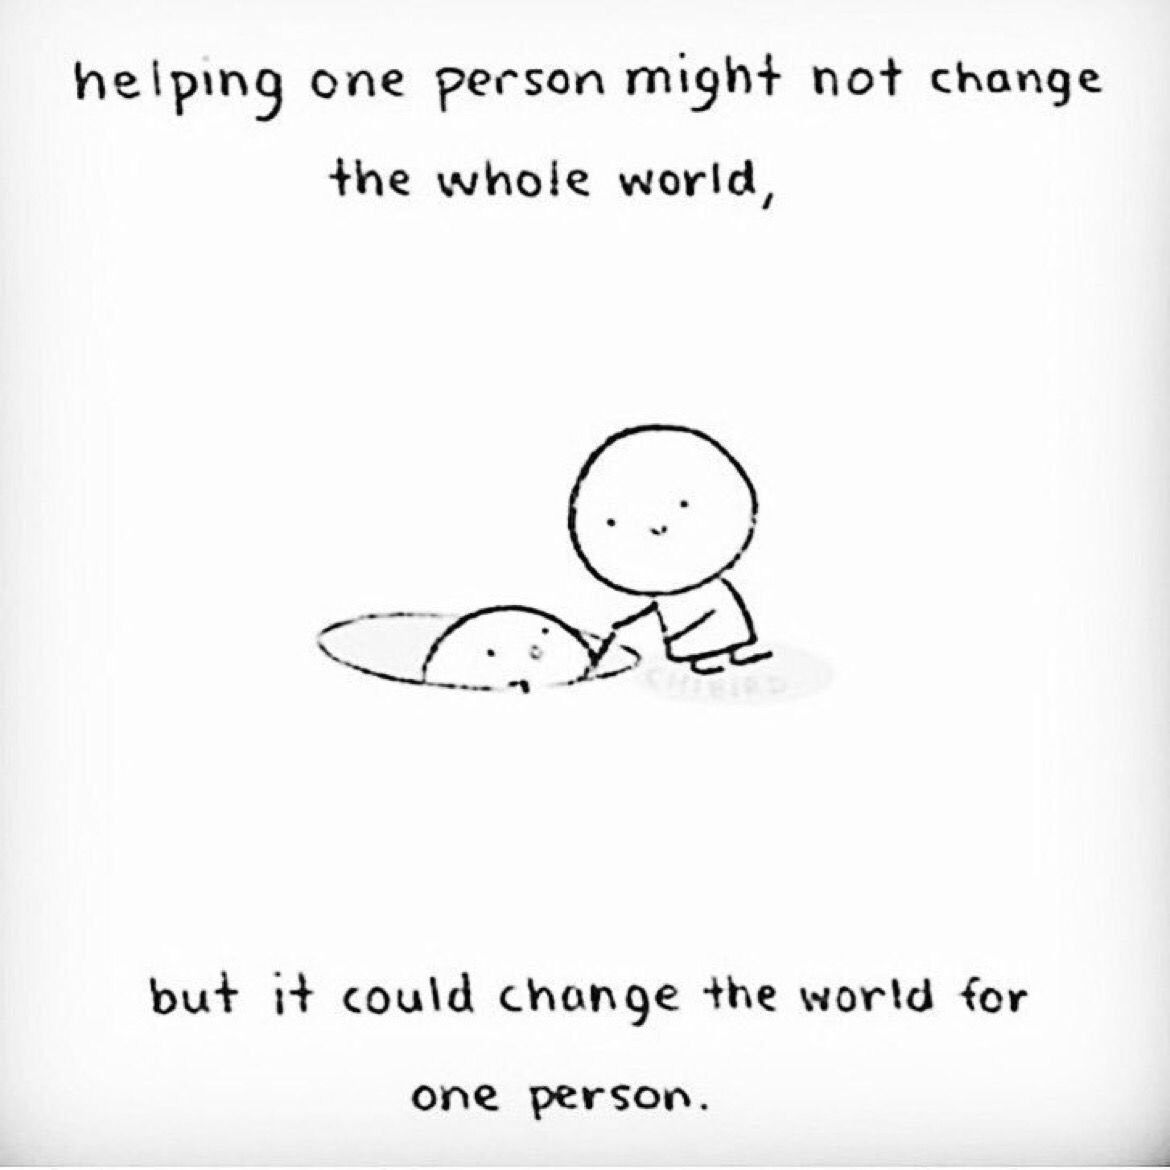 Helping one person might not change the whole world, but it could change the world for one person. https://t.co/1pWAFZQ2zV